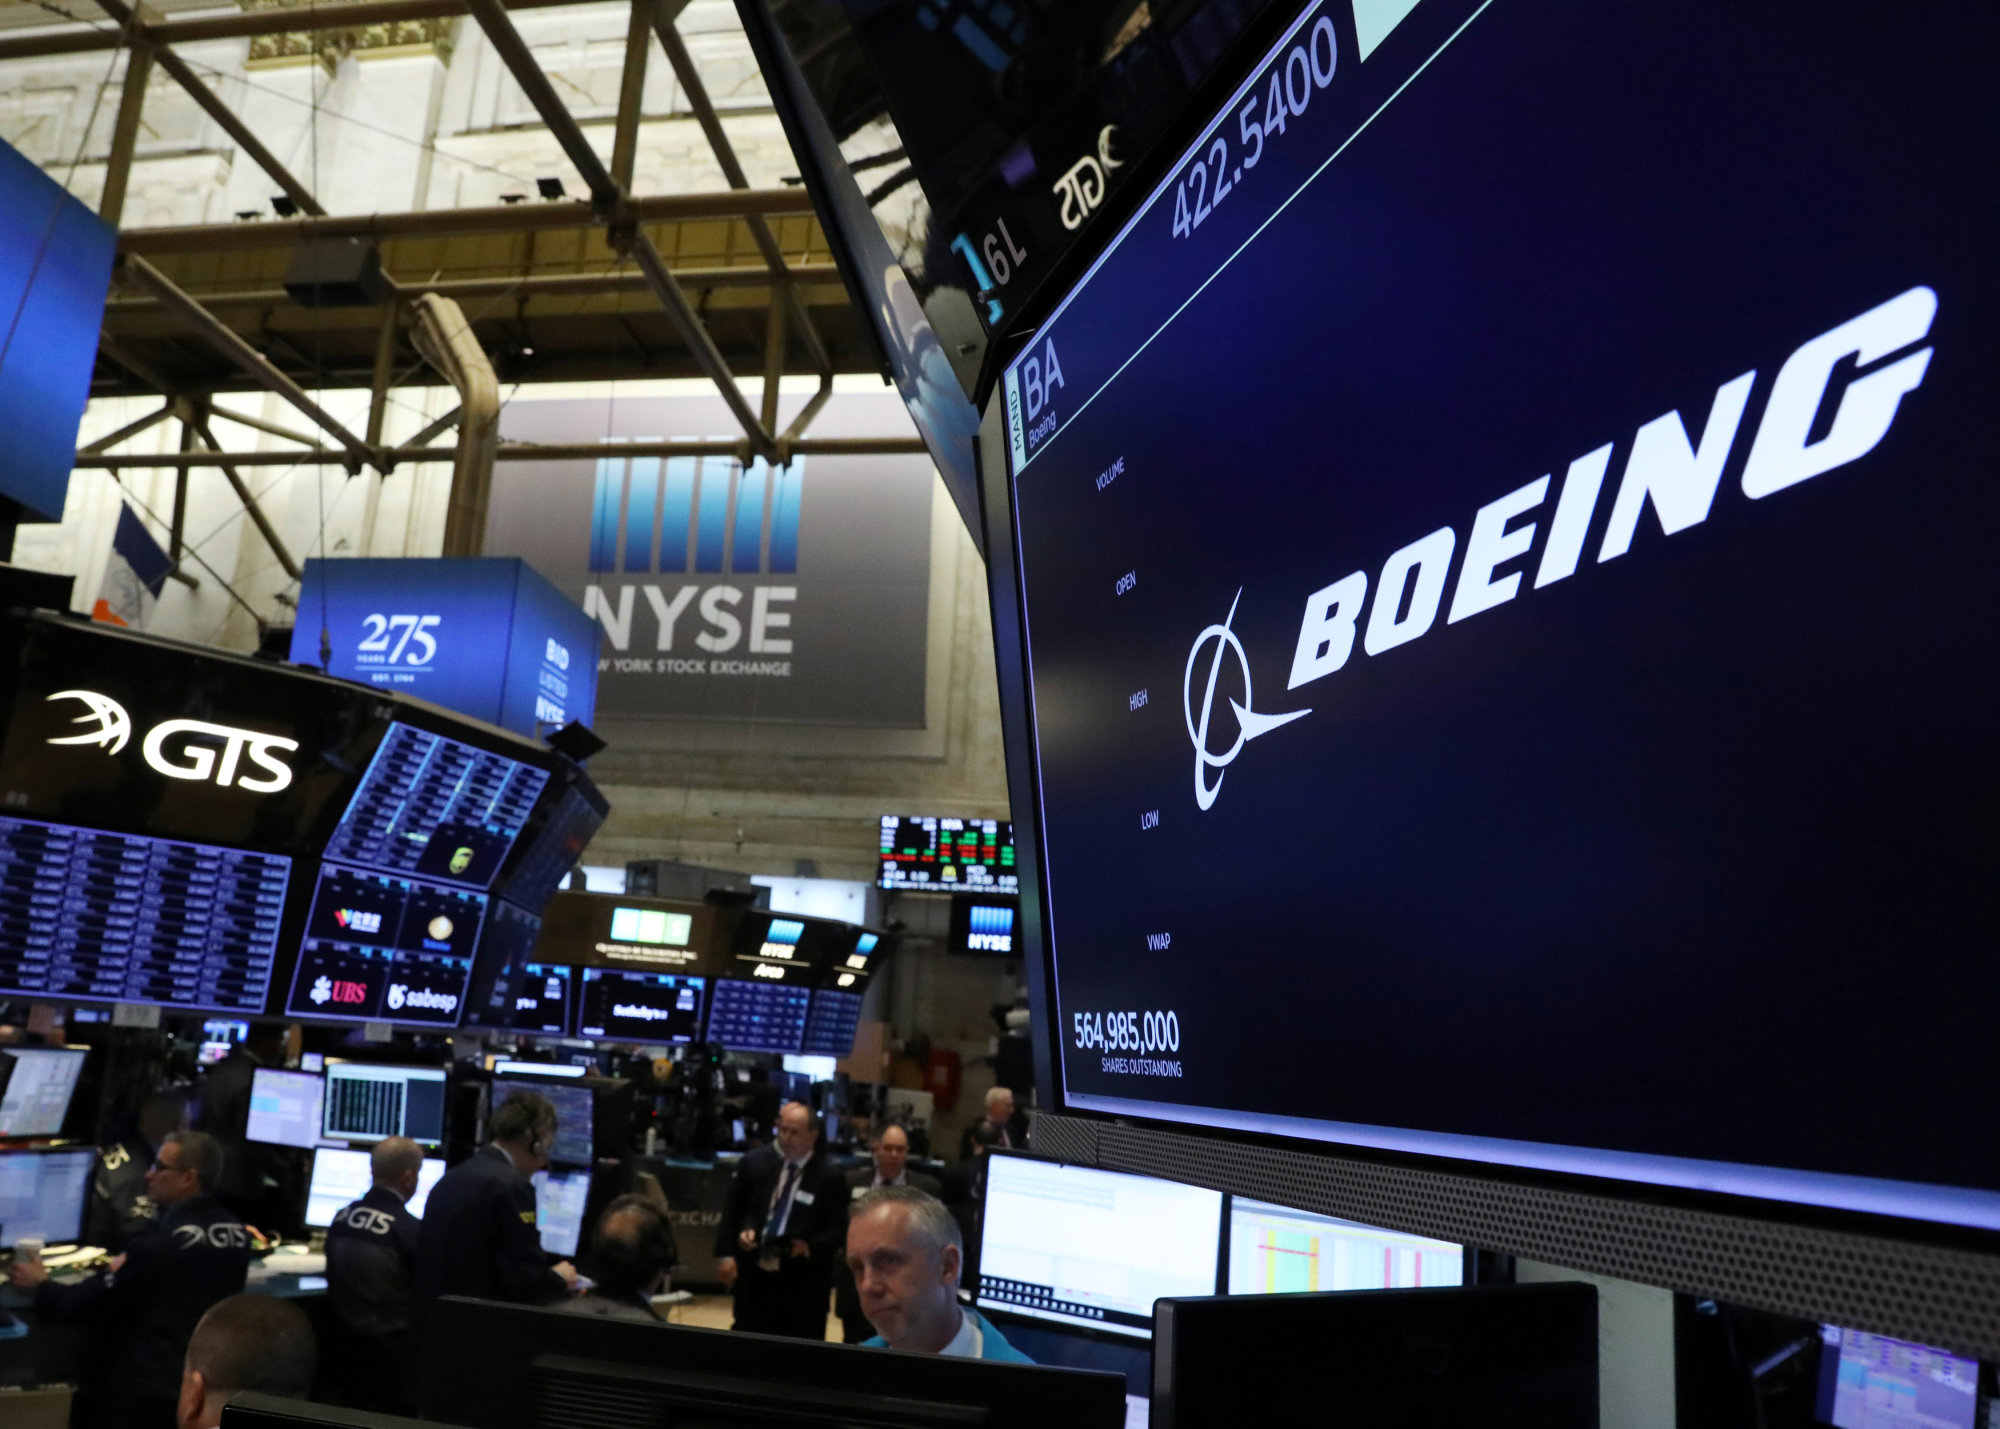 The company logo for Boeing is displayed on a screen on the floor of the New York Stock Exchange (NYSE) in New York Monday. | REUTERS